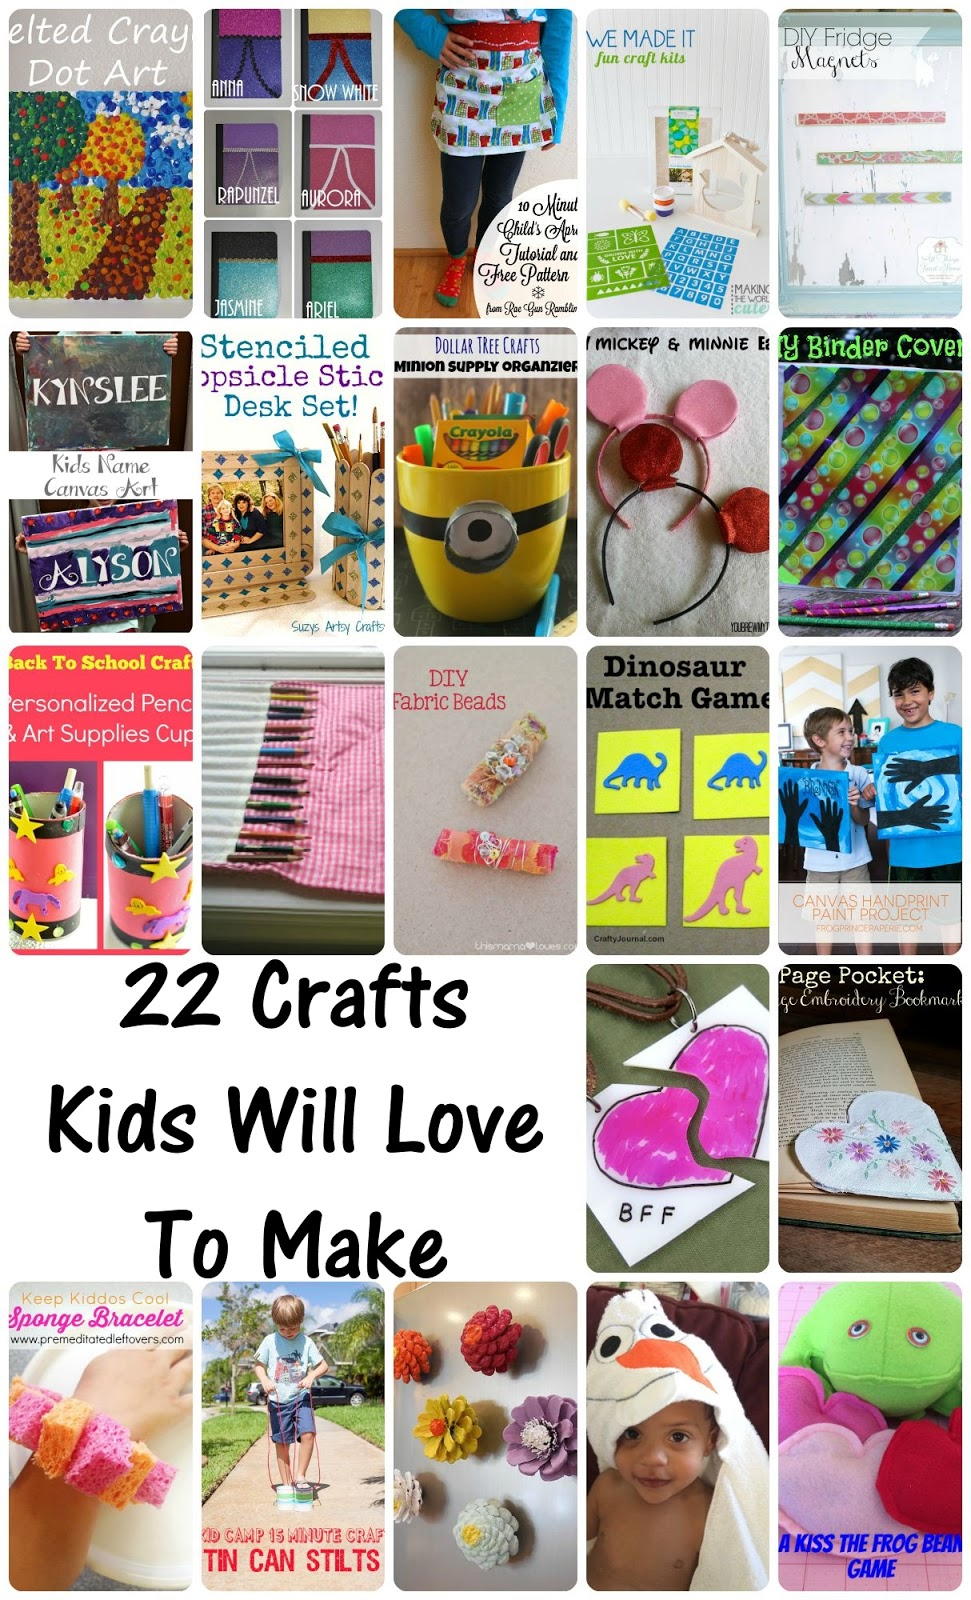 22 Crafts for Kids